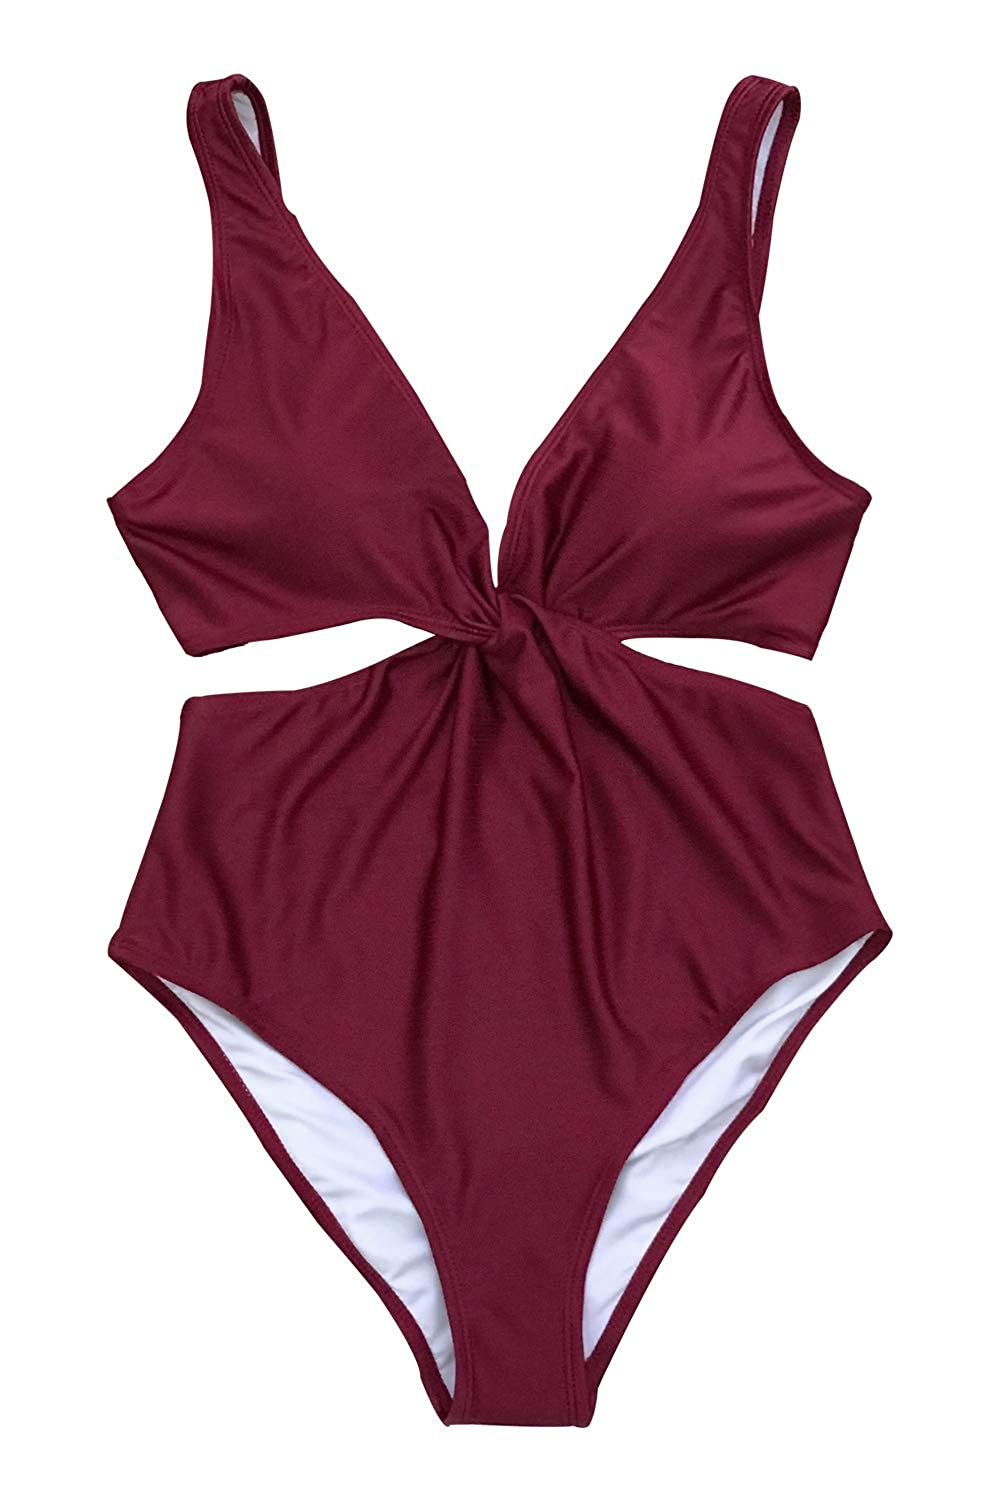 abcb5695371 CUPSHE Women's Maroon Twist Back Tie One-Piece Swimsuit with Cutout